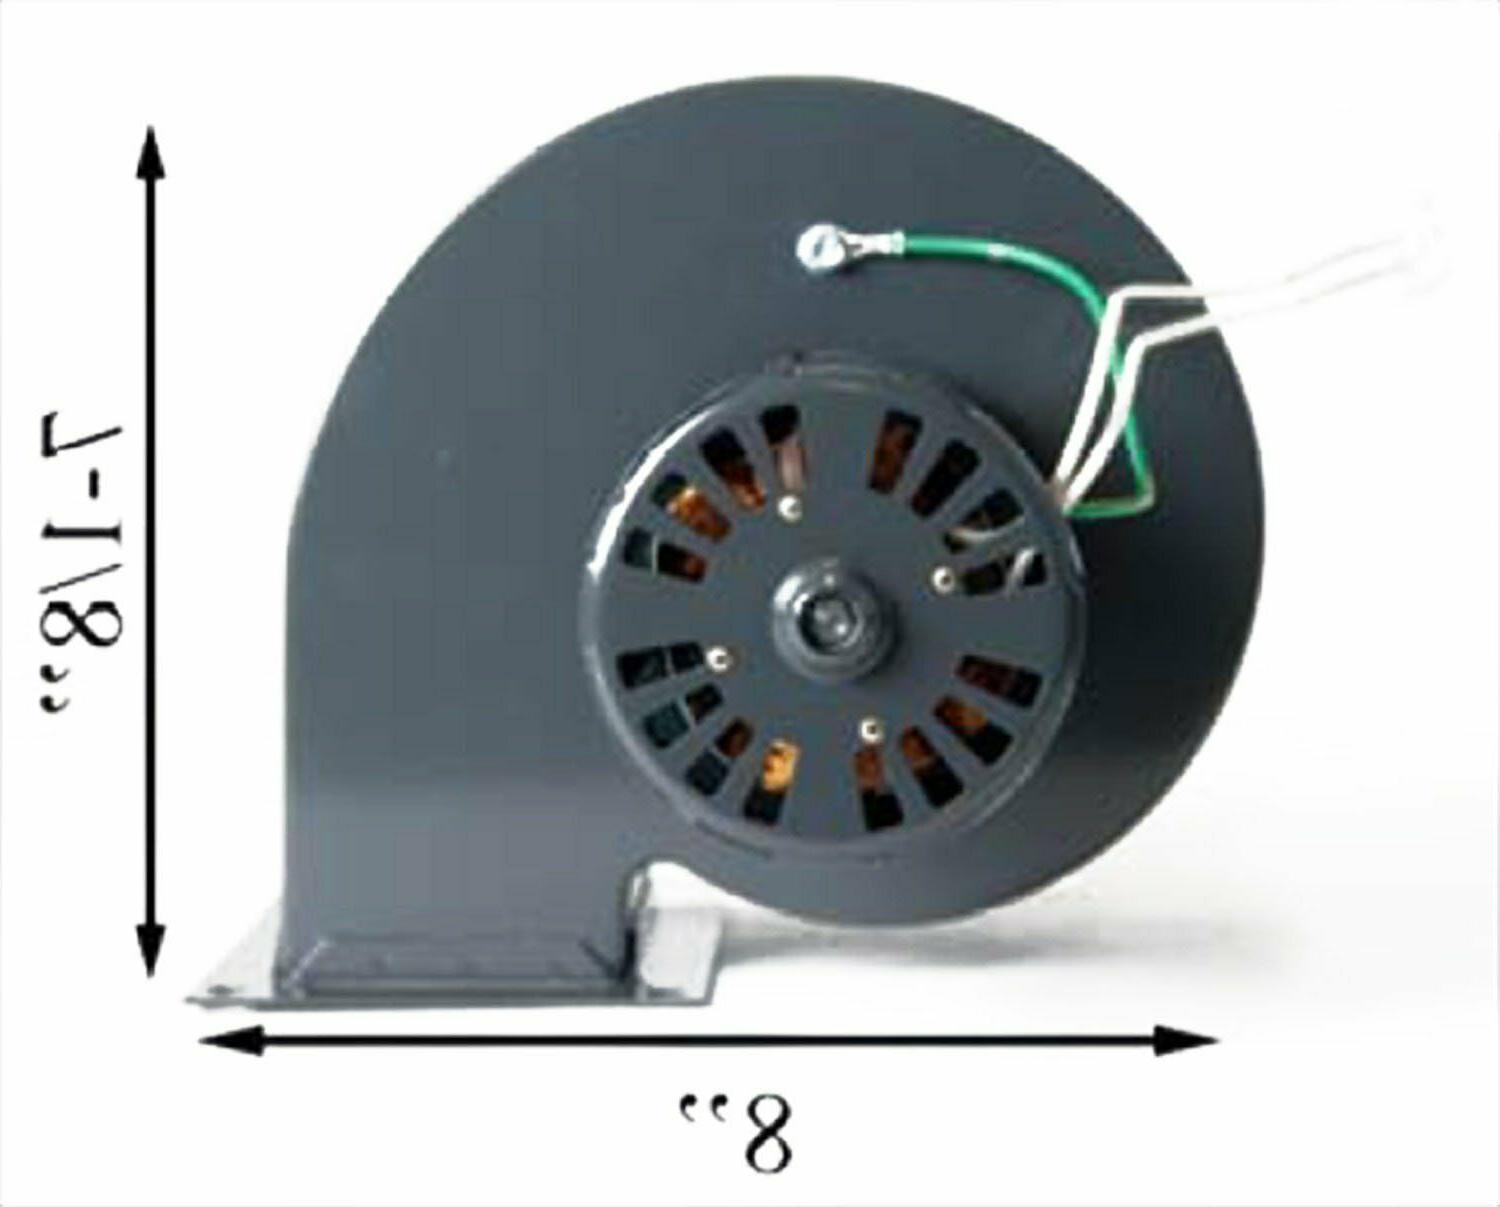 PelletStovePro Profile 20 & Room Air Blower Fan